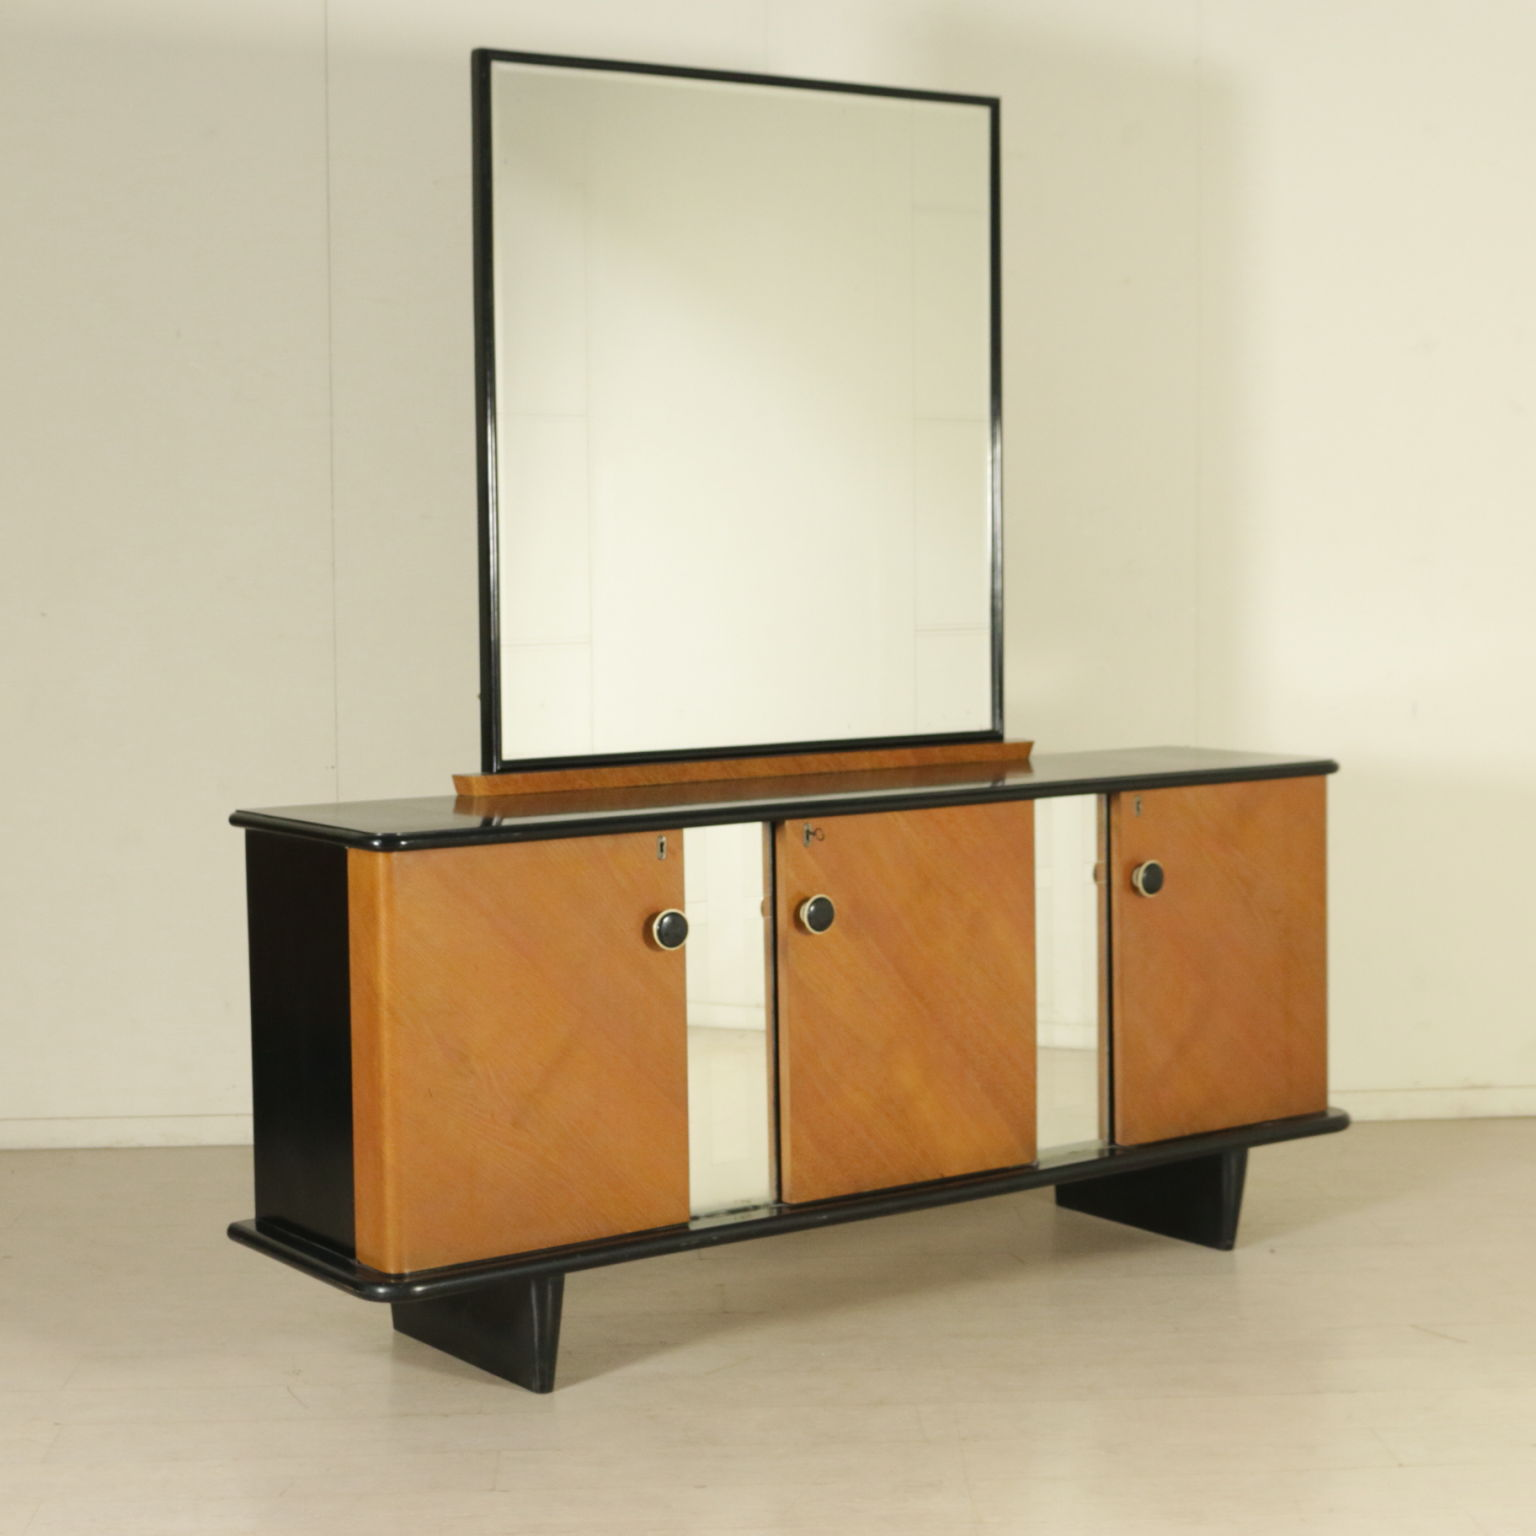 mobile 40 jahre m bel modernes design. Black Bedroom Furniture Sets. Home Design Ideas